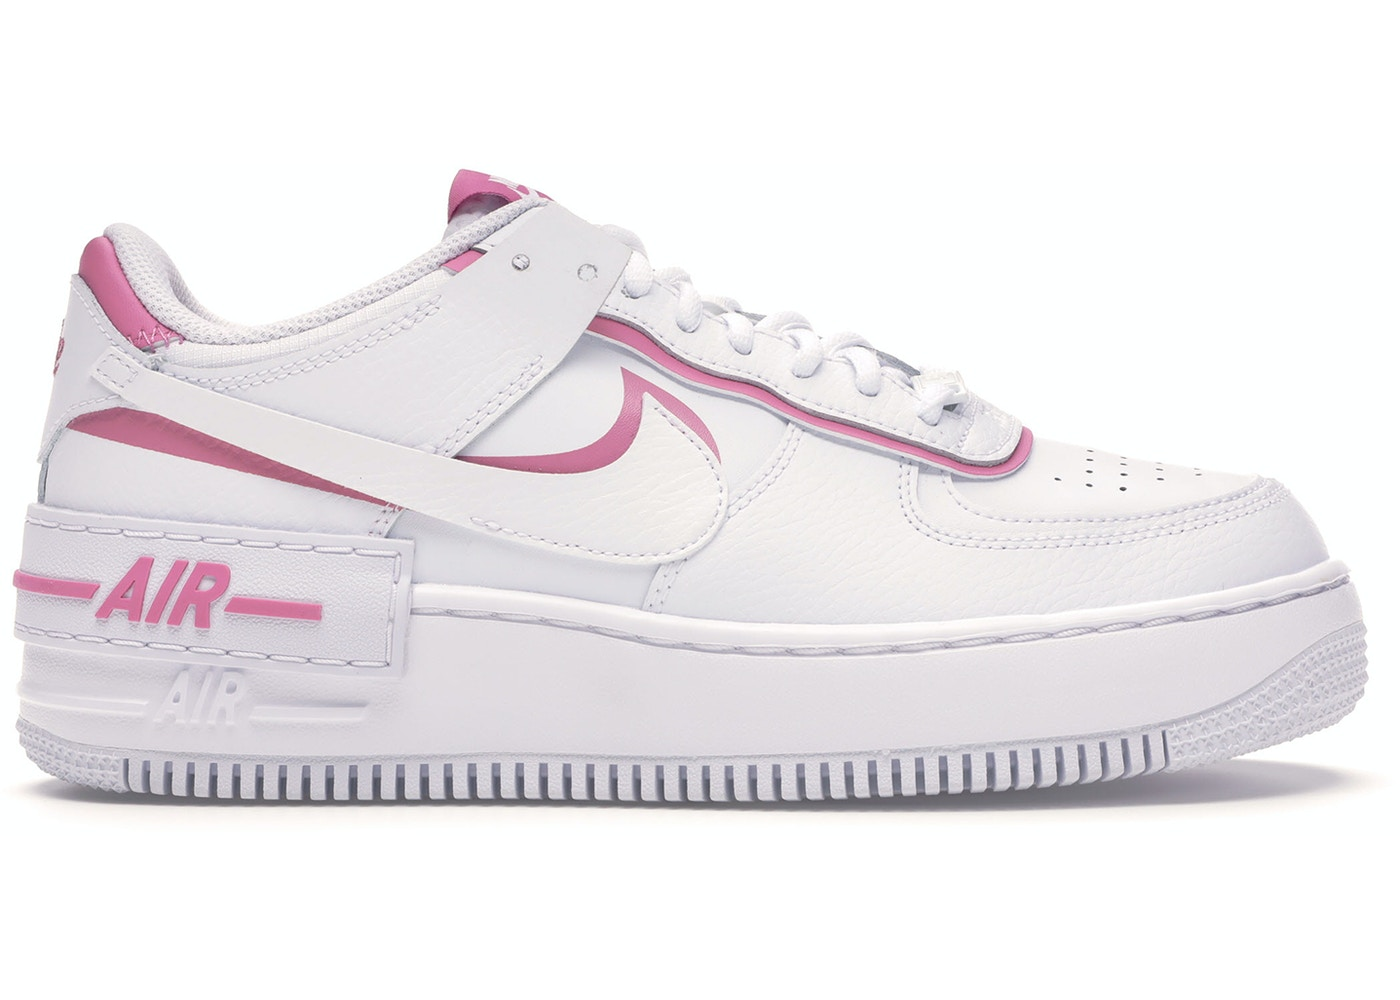 Nike Air Force 1 Shadow White Magic Flamingo W Ci0919 102 La très connue tout en reprenant l'adn du modèle initial, la silhouette de la nike air force 1 shadow se veut simple et efficace mais possède quelques détails inédits. nike air force 1 shadow white magic flamingo w